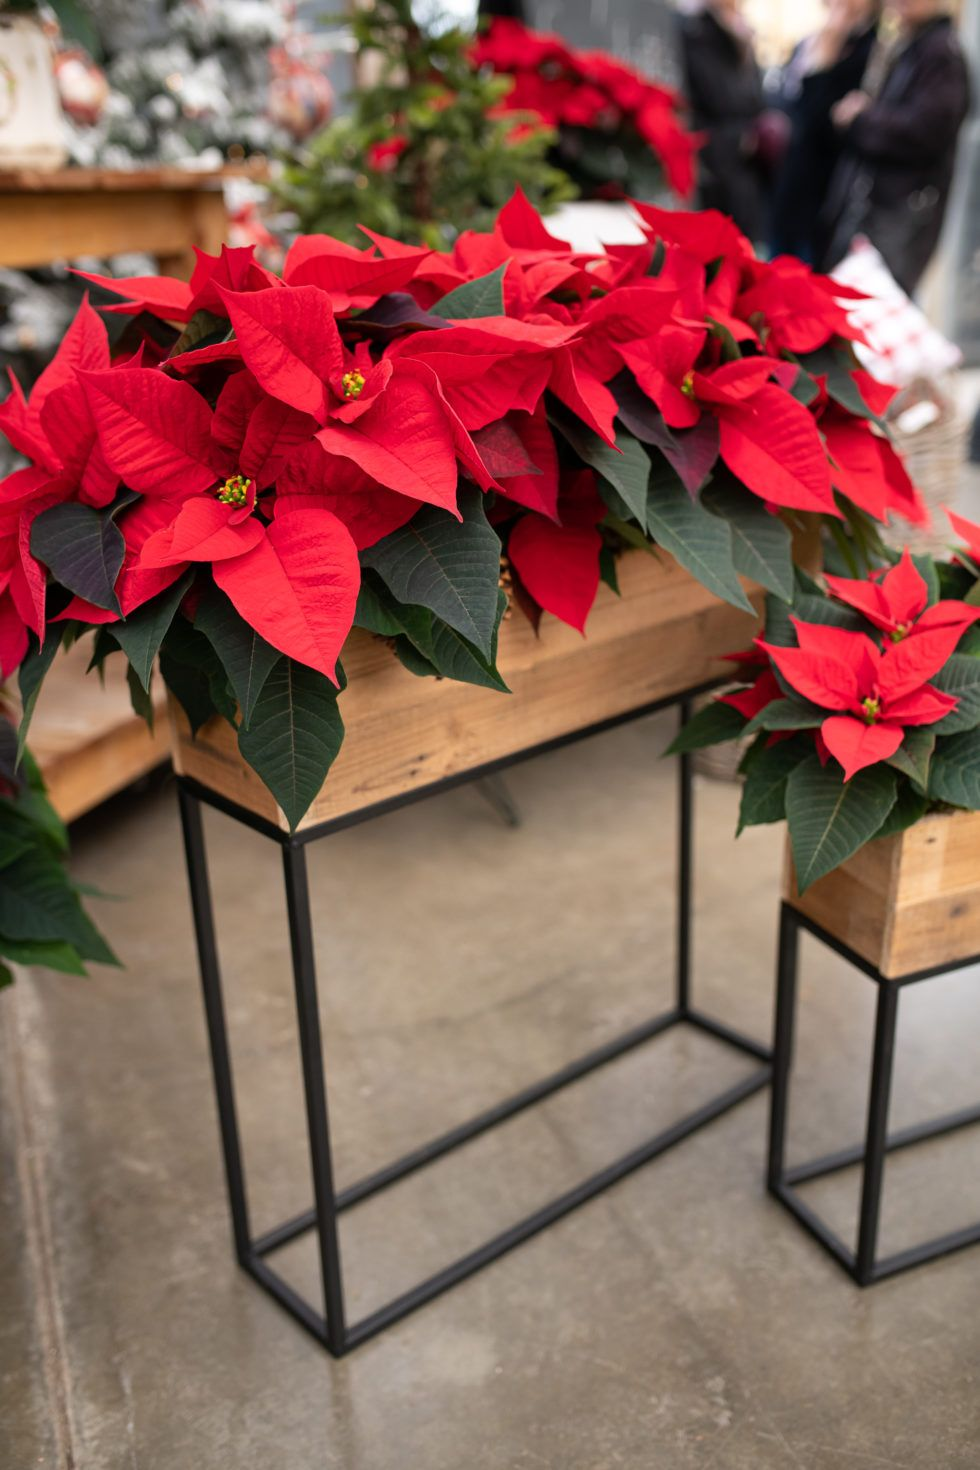 The Royal Christmas Welcome Christmas Indoor Planters Indoor Plants Floral New In Store Winter West Coast Gardens Red Christmas Decor Wooden Planter Boxes Rustic Box